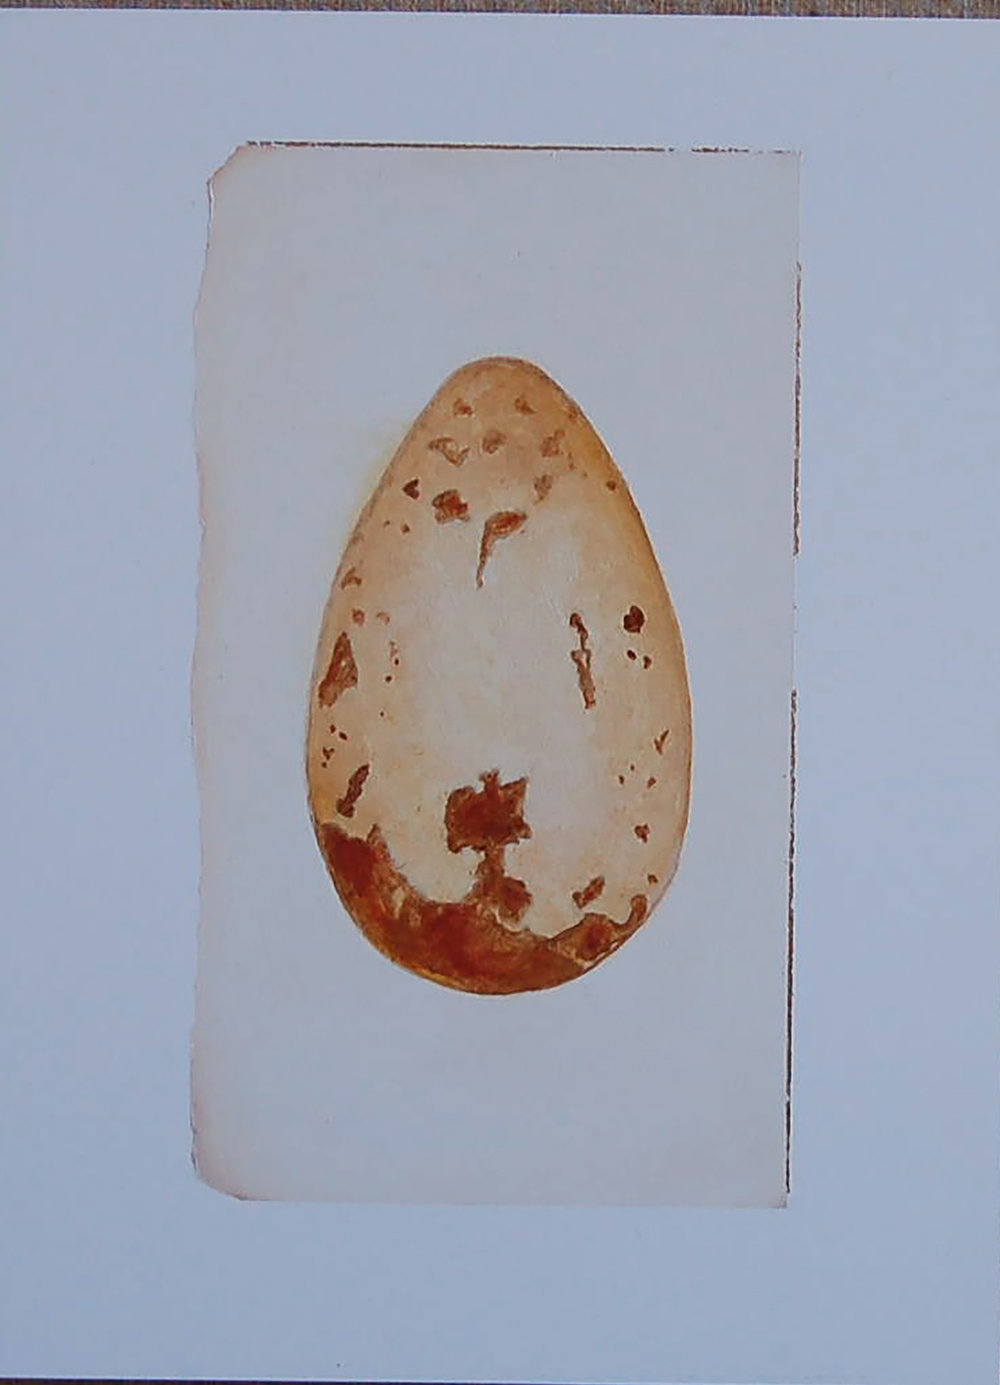 FalconeAuk egg